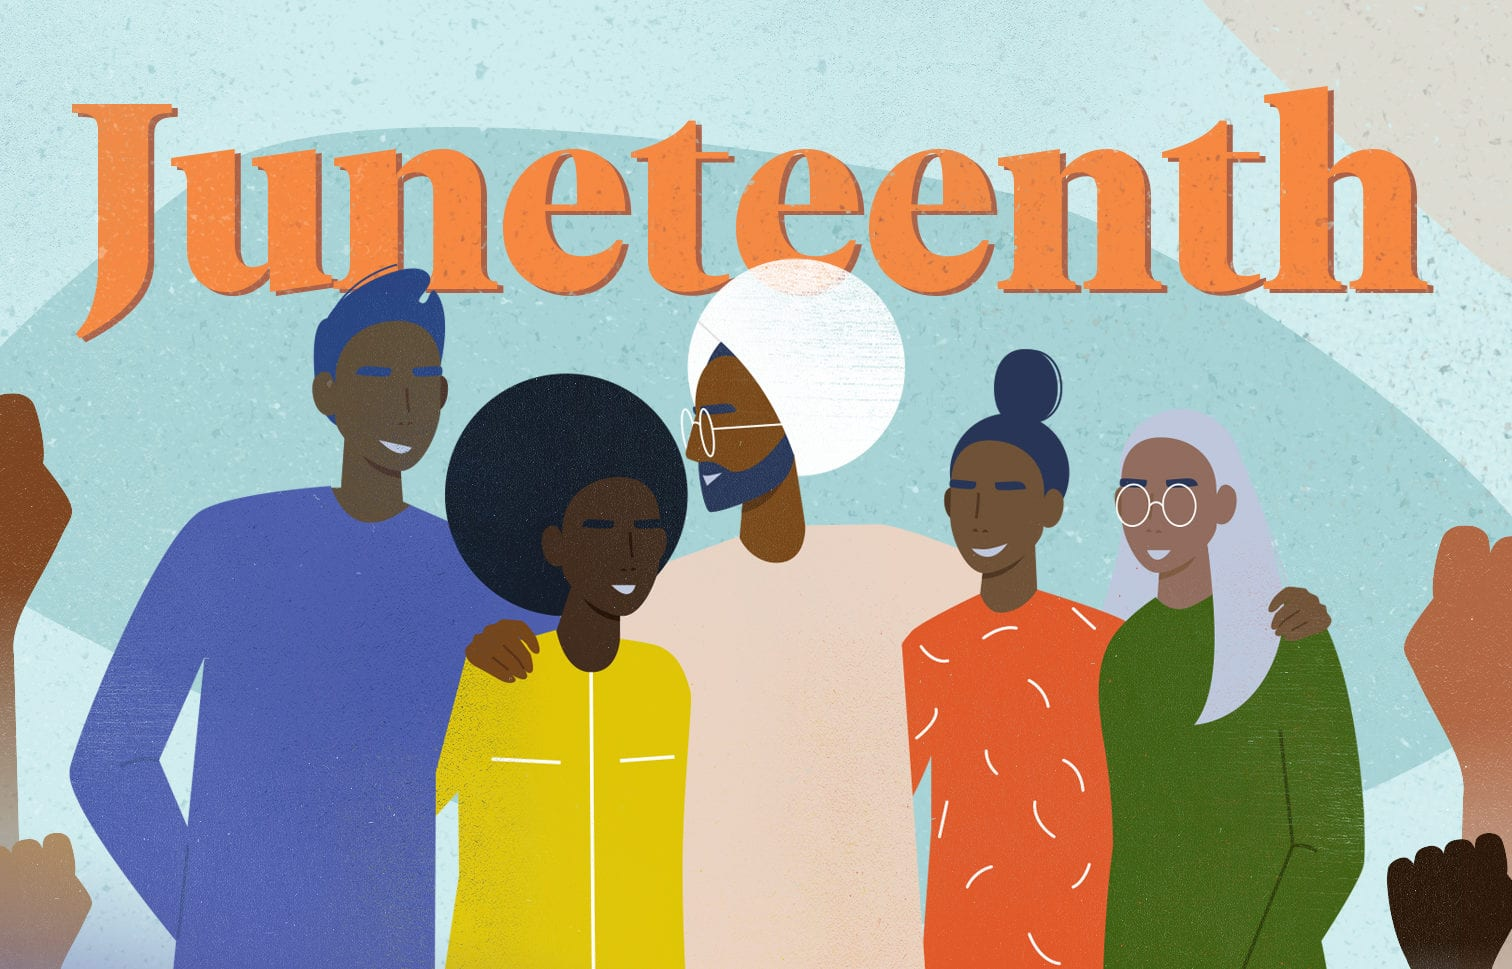 A list of 19 things leaders can do on Juneteenth to demonstrate their commitment to change.